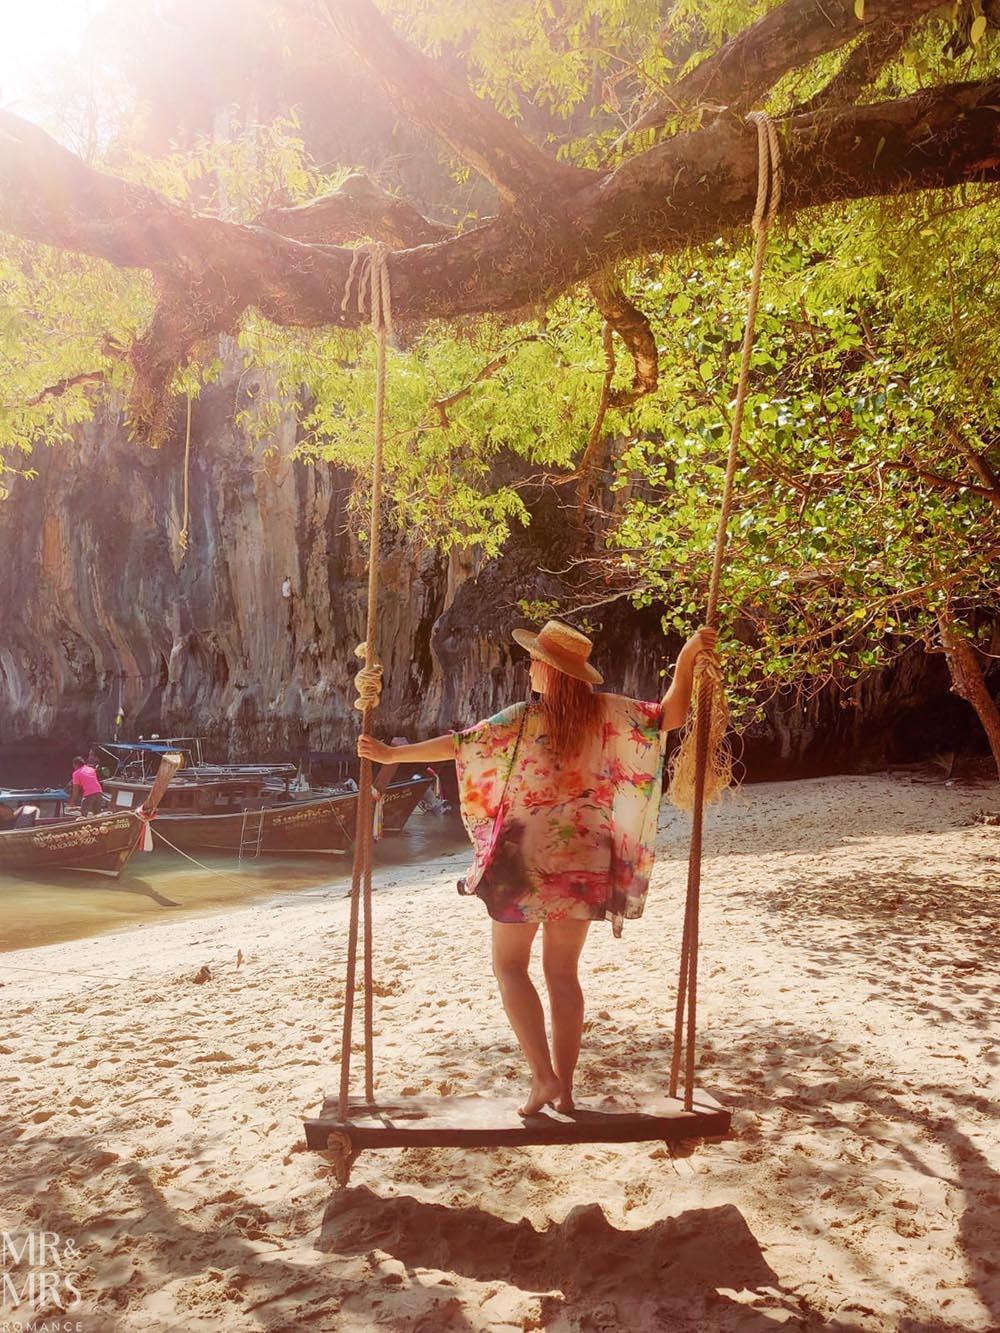 Island-hopping Krabi, Thailand private speedboat Ko Lao Lading beach swing